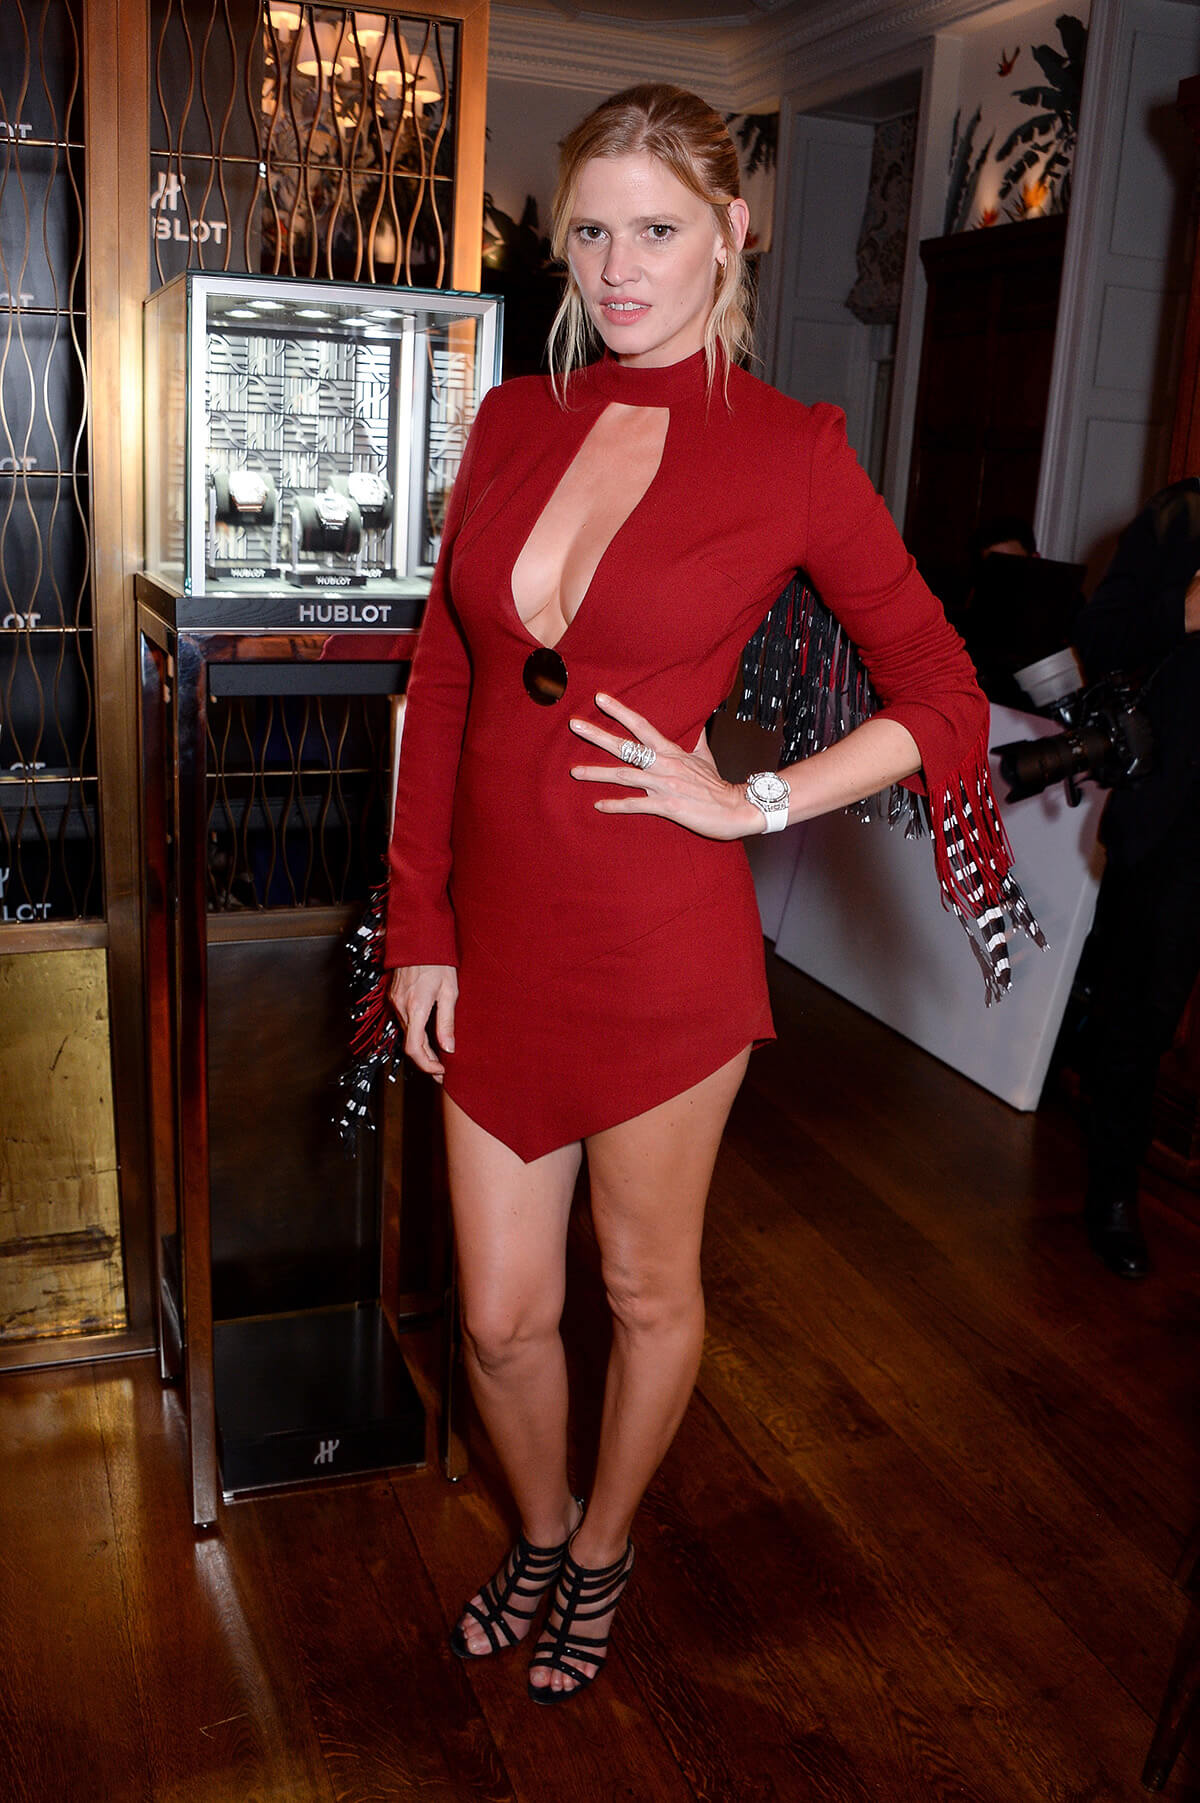 Model Lara Stone poses in short red dress